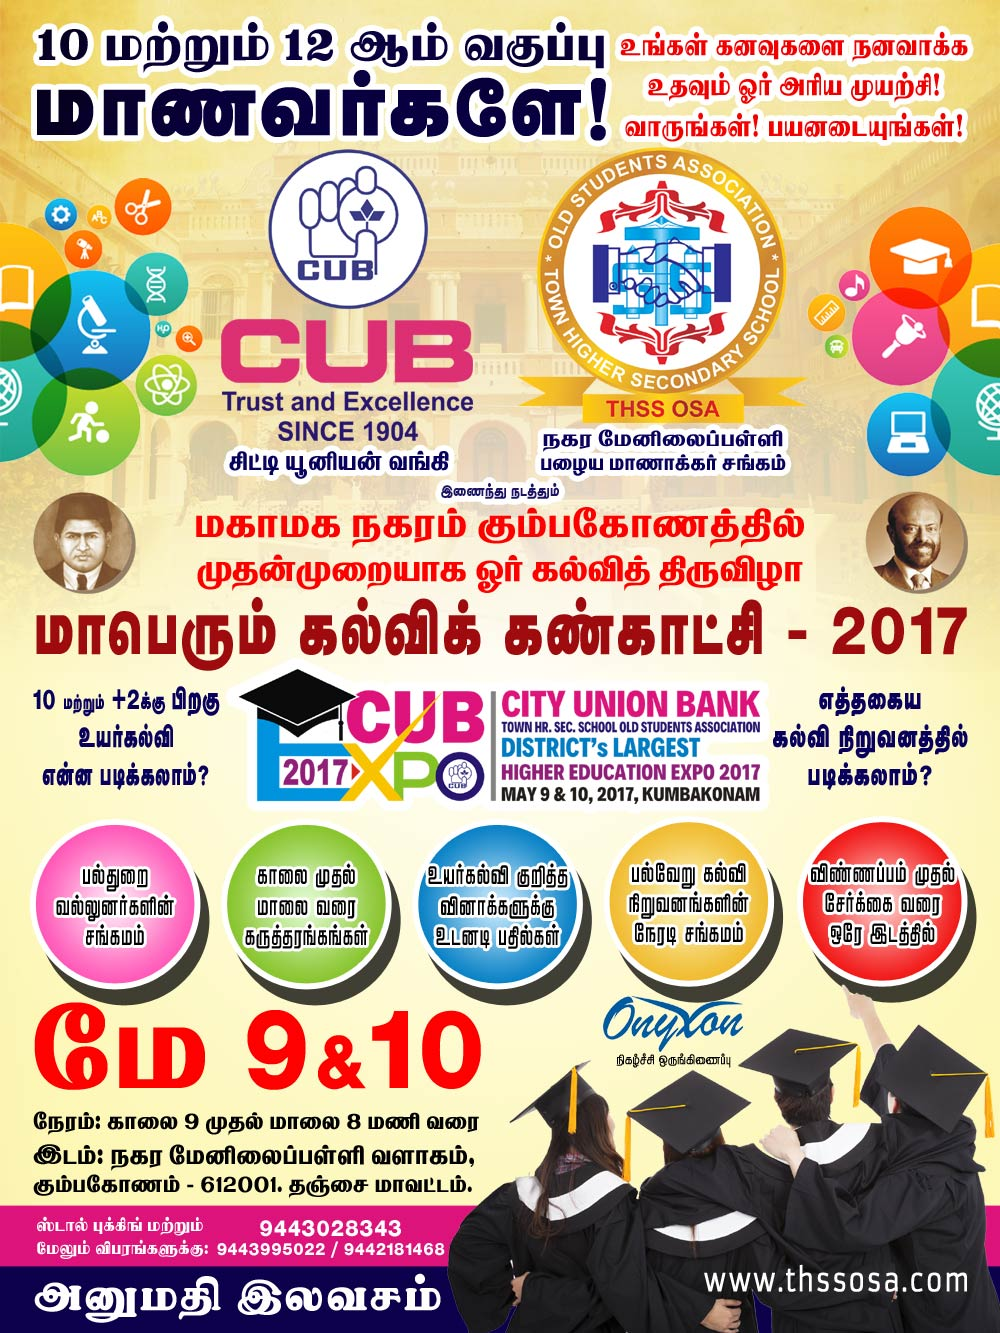 education expo 2017,kumbakonam education expo,education fair 2017,kumbakonam schools,college fair,onyxon,kumbakonam it company,kumbakonam website,web design kumbakonam,kumbakonam town hr sec school,old students association,kumbakonam mahamaham